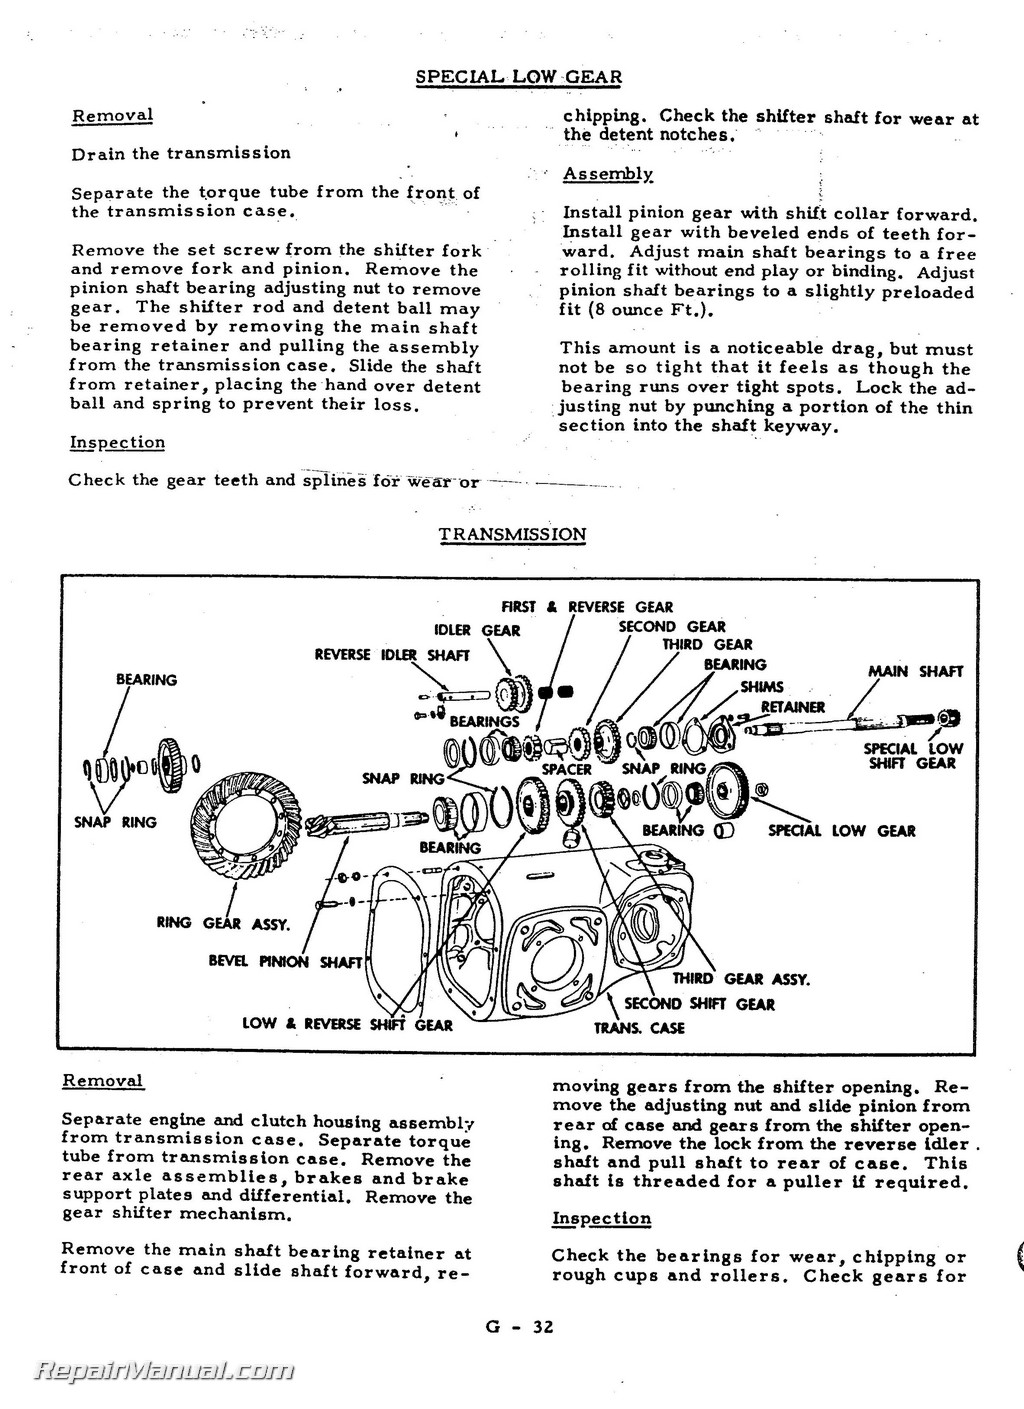 allis chalmers g wiring diagram  | 670 x 516